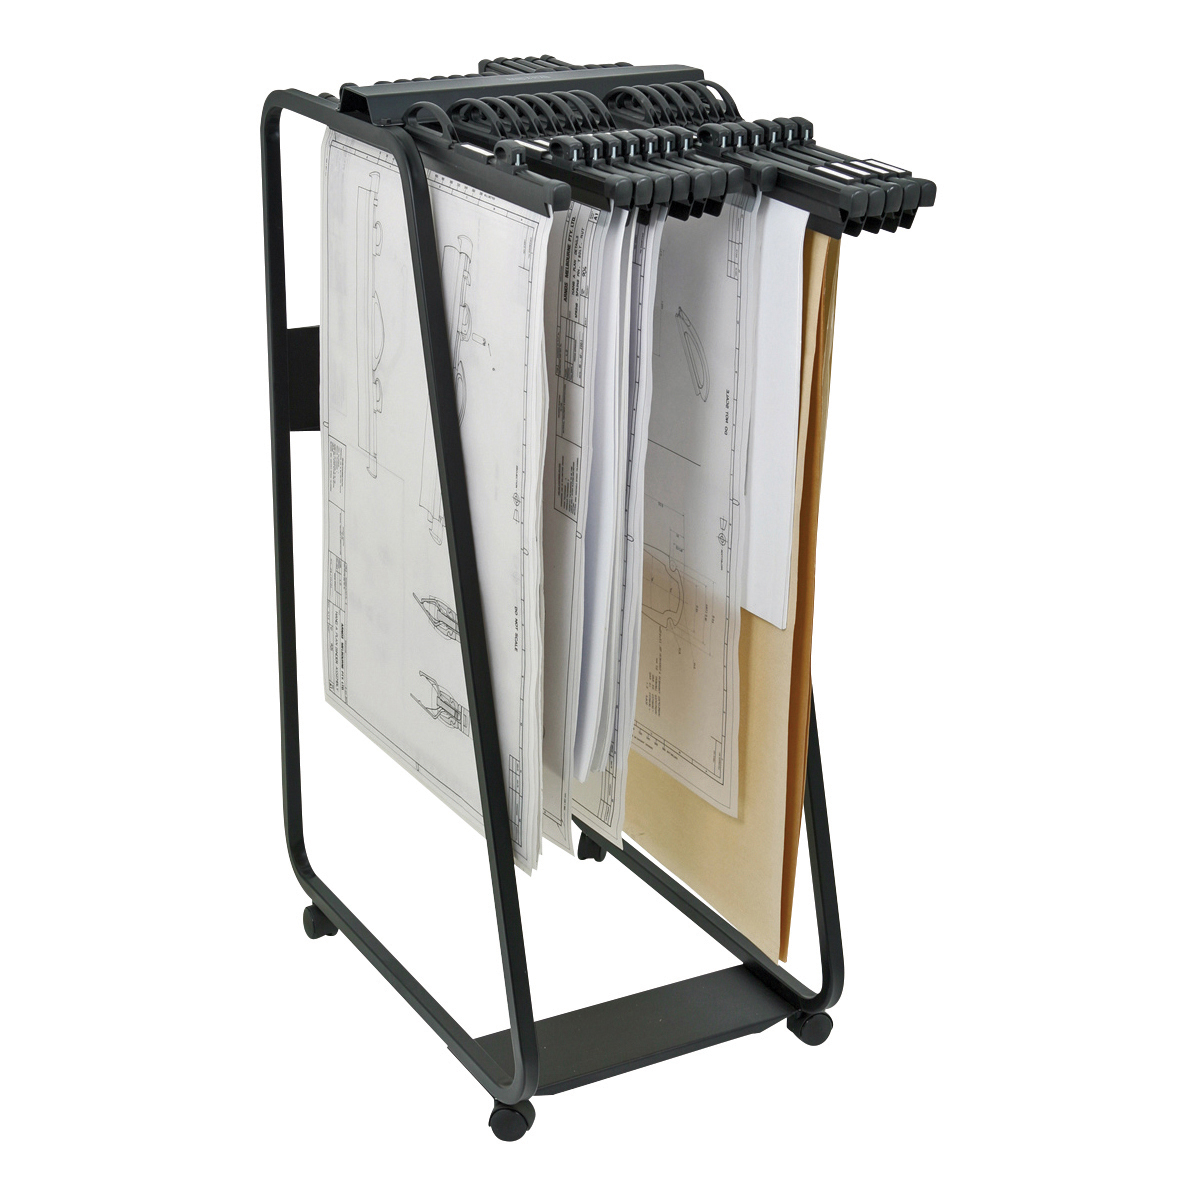 Trolleys or accessories Arnos Hang-A-Plan General Front Load Trolley for Approx 20 Binders A0-A1-A2-B1 W550xD800xH1320mm Ref D060